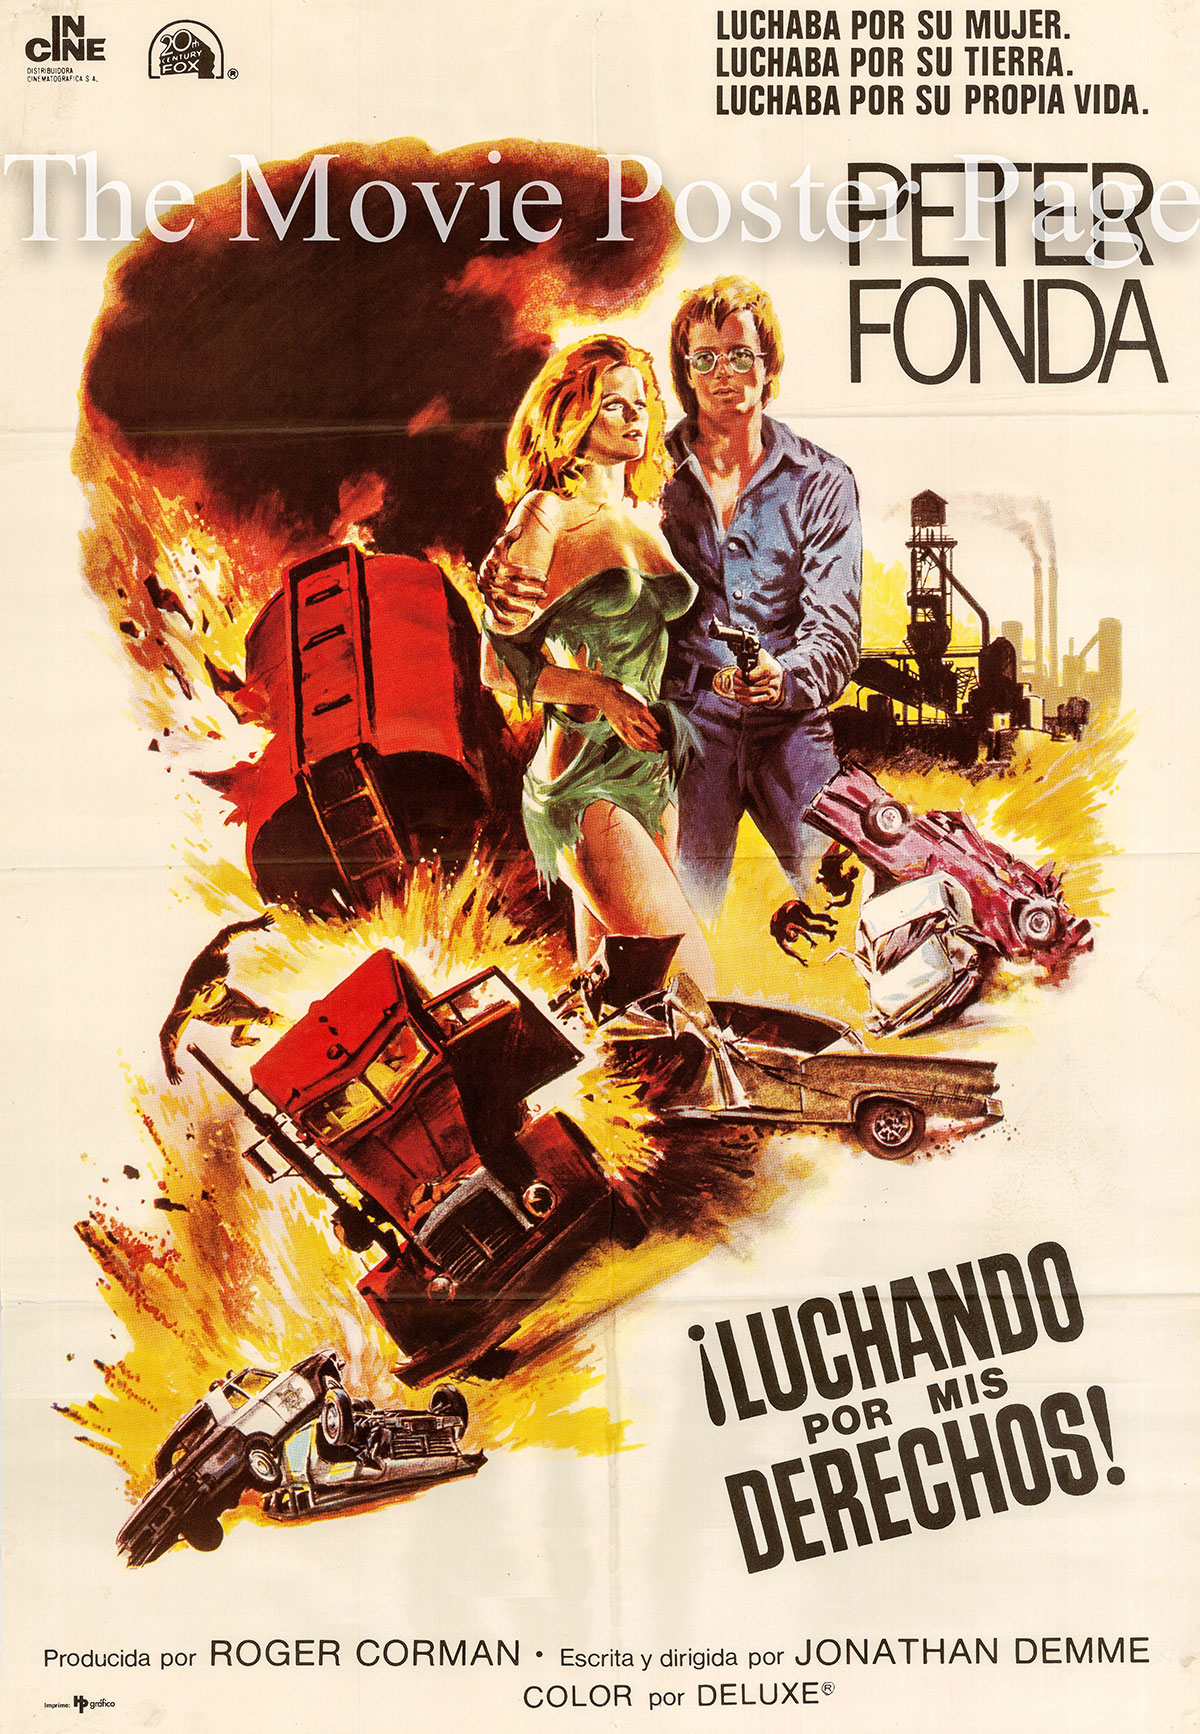 Pictured is a Spanish one-sheet poster for the 1976 Jonathan Demme film Fighting Mad starring Peter Fonda.